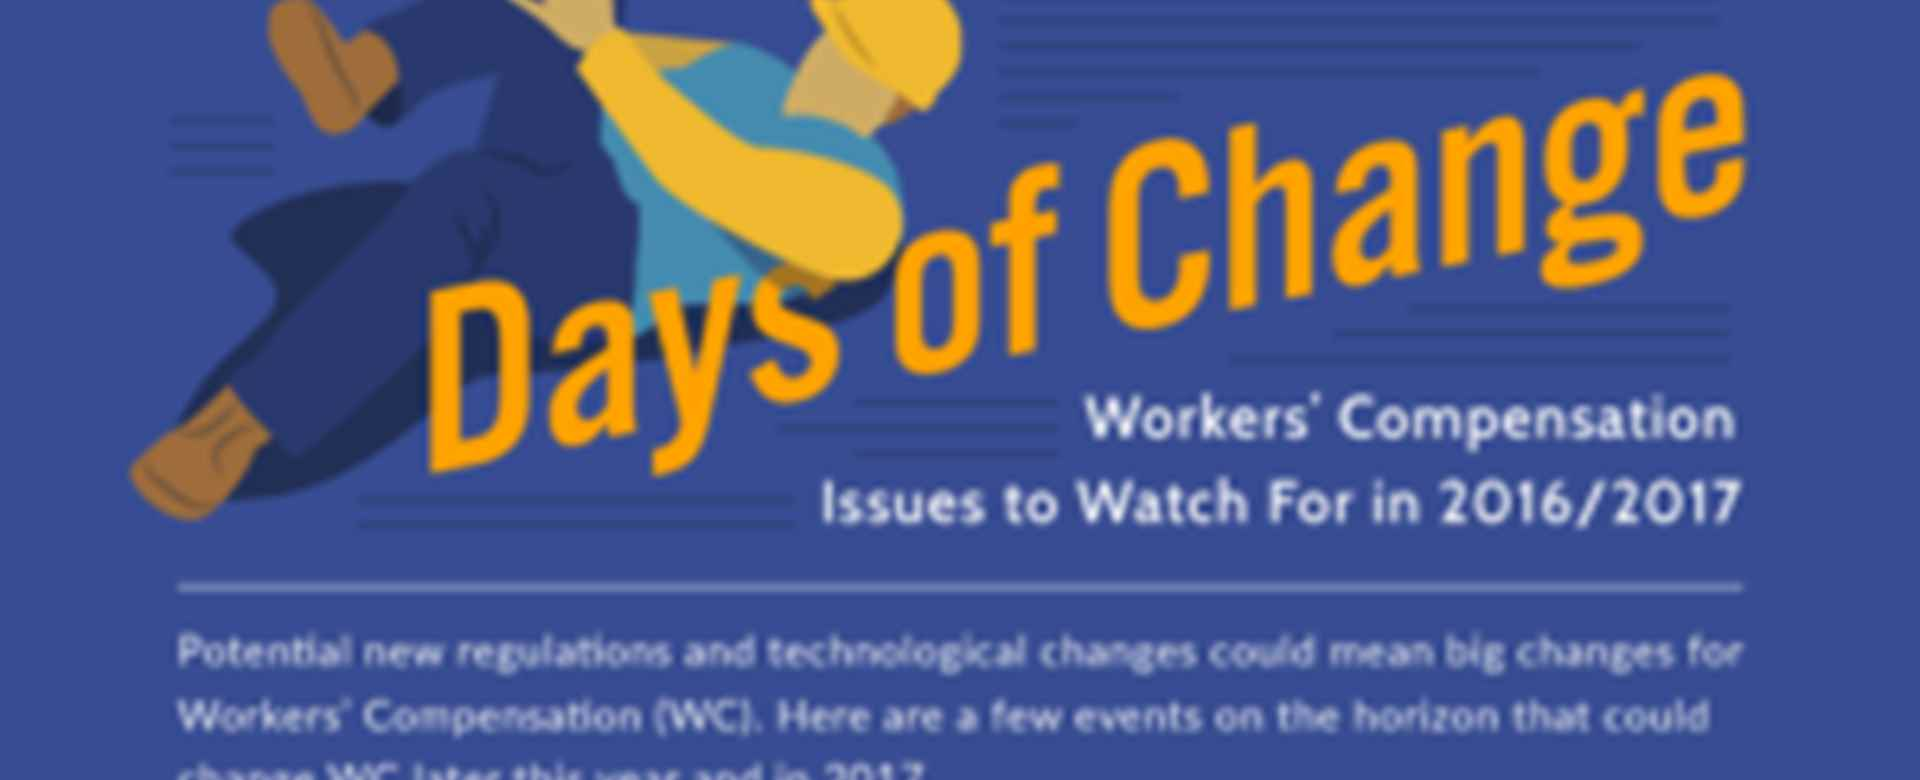 Days of Change - Workers' Compensation In 2017 [Infographic]